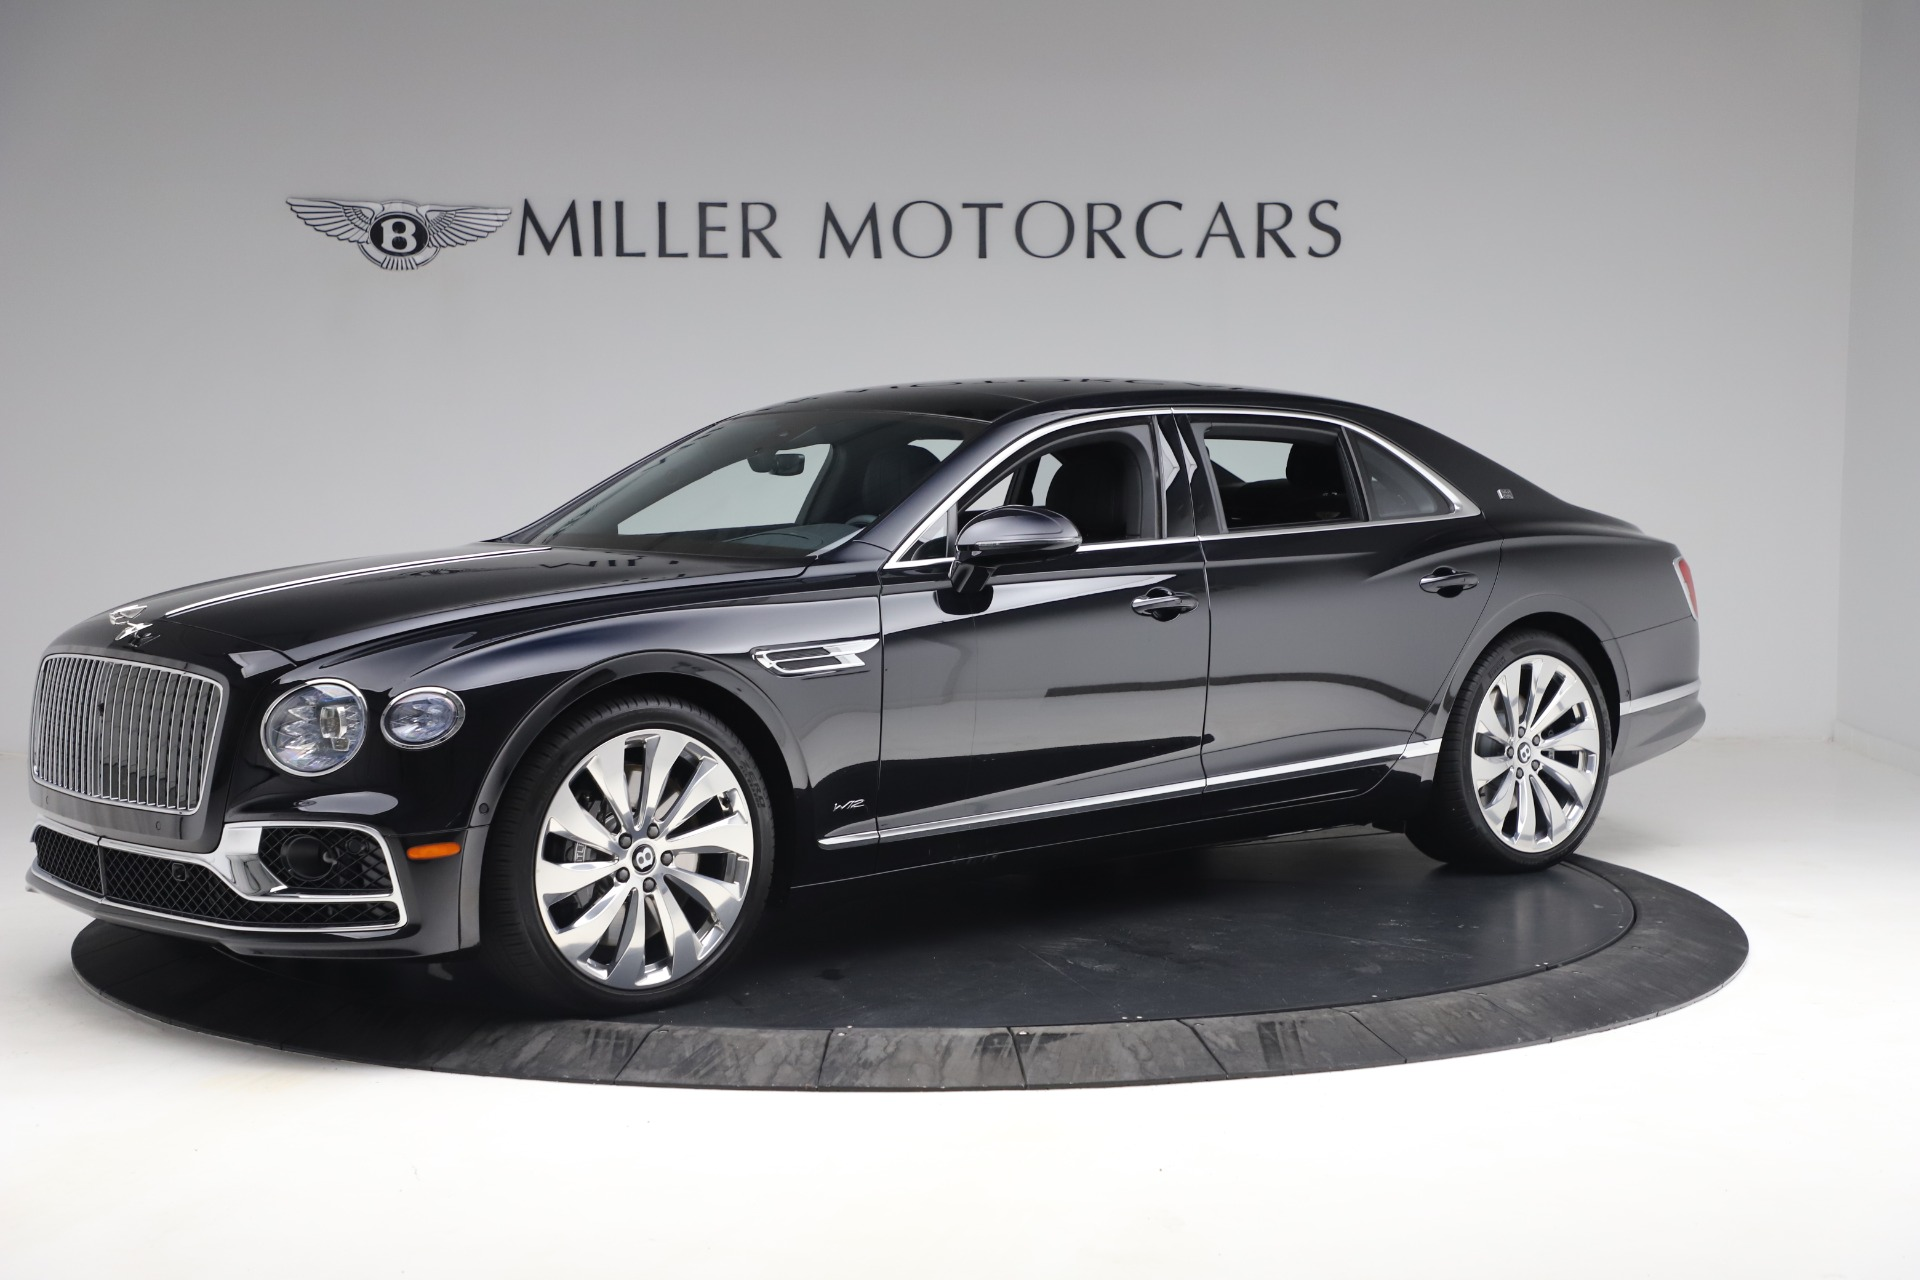 Used 2020 Bentley Flying Spur W12 First Edition for sale Sold at Alfa Romeo of Westport in Westport CT 06880 1